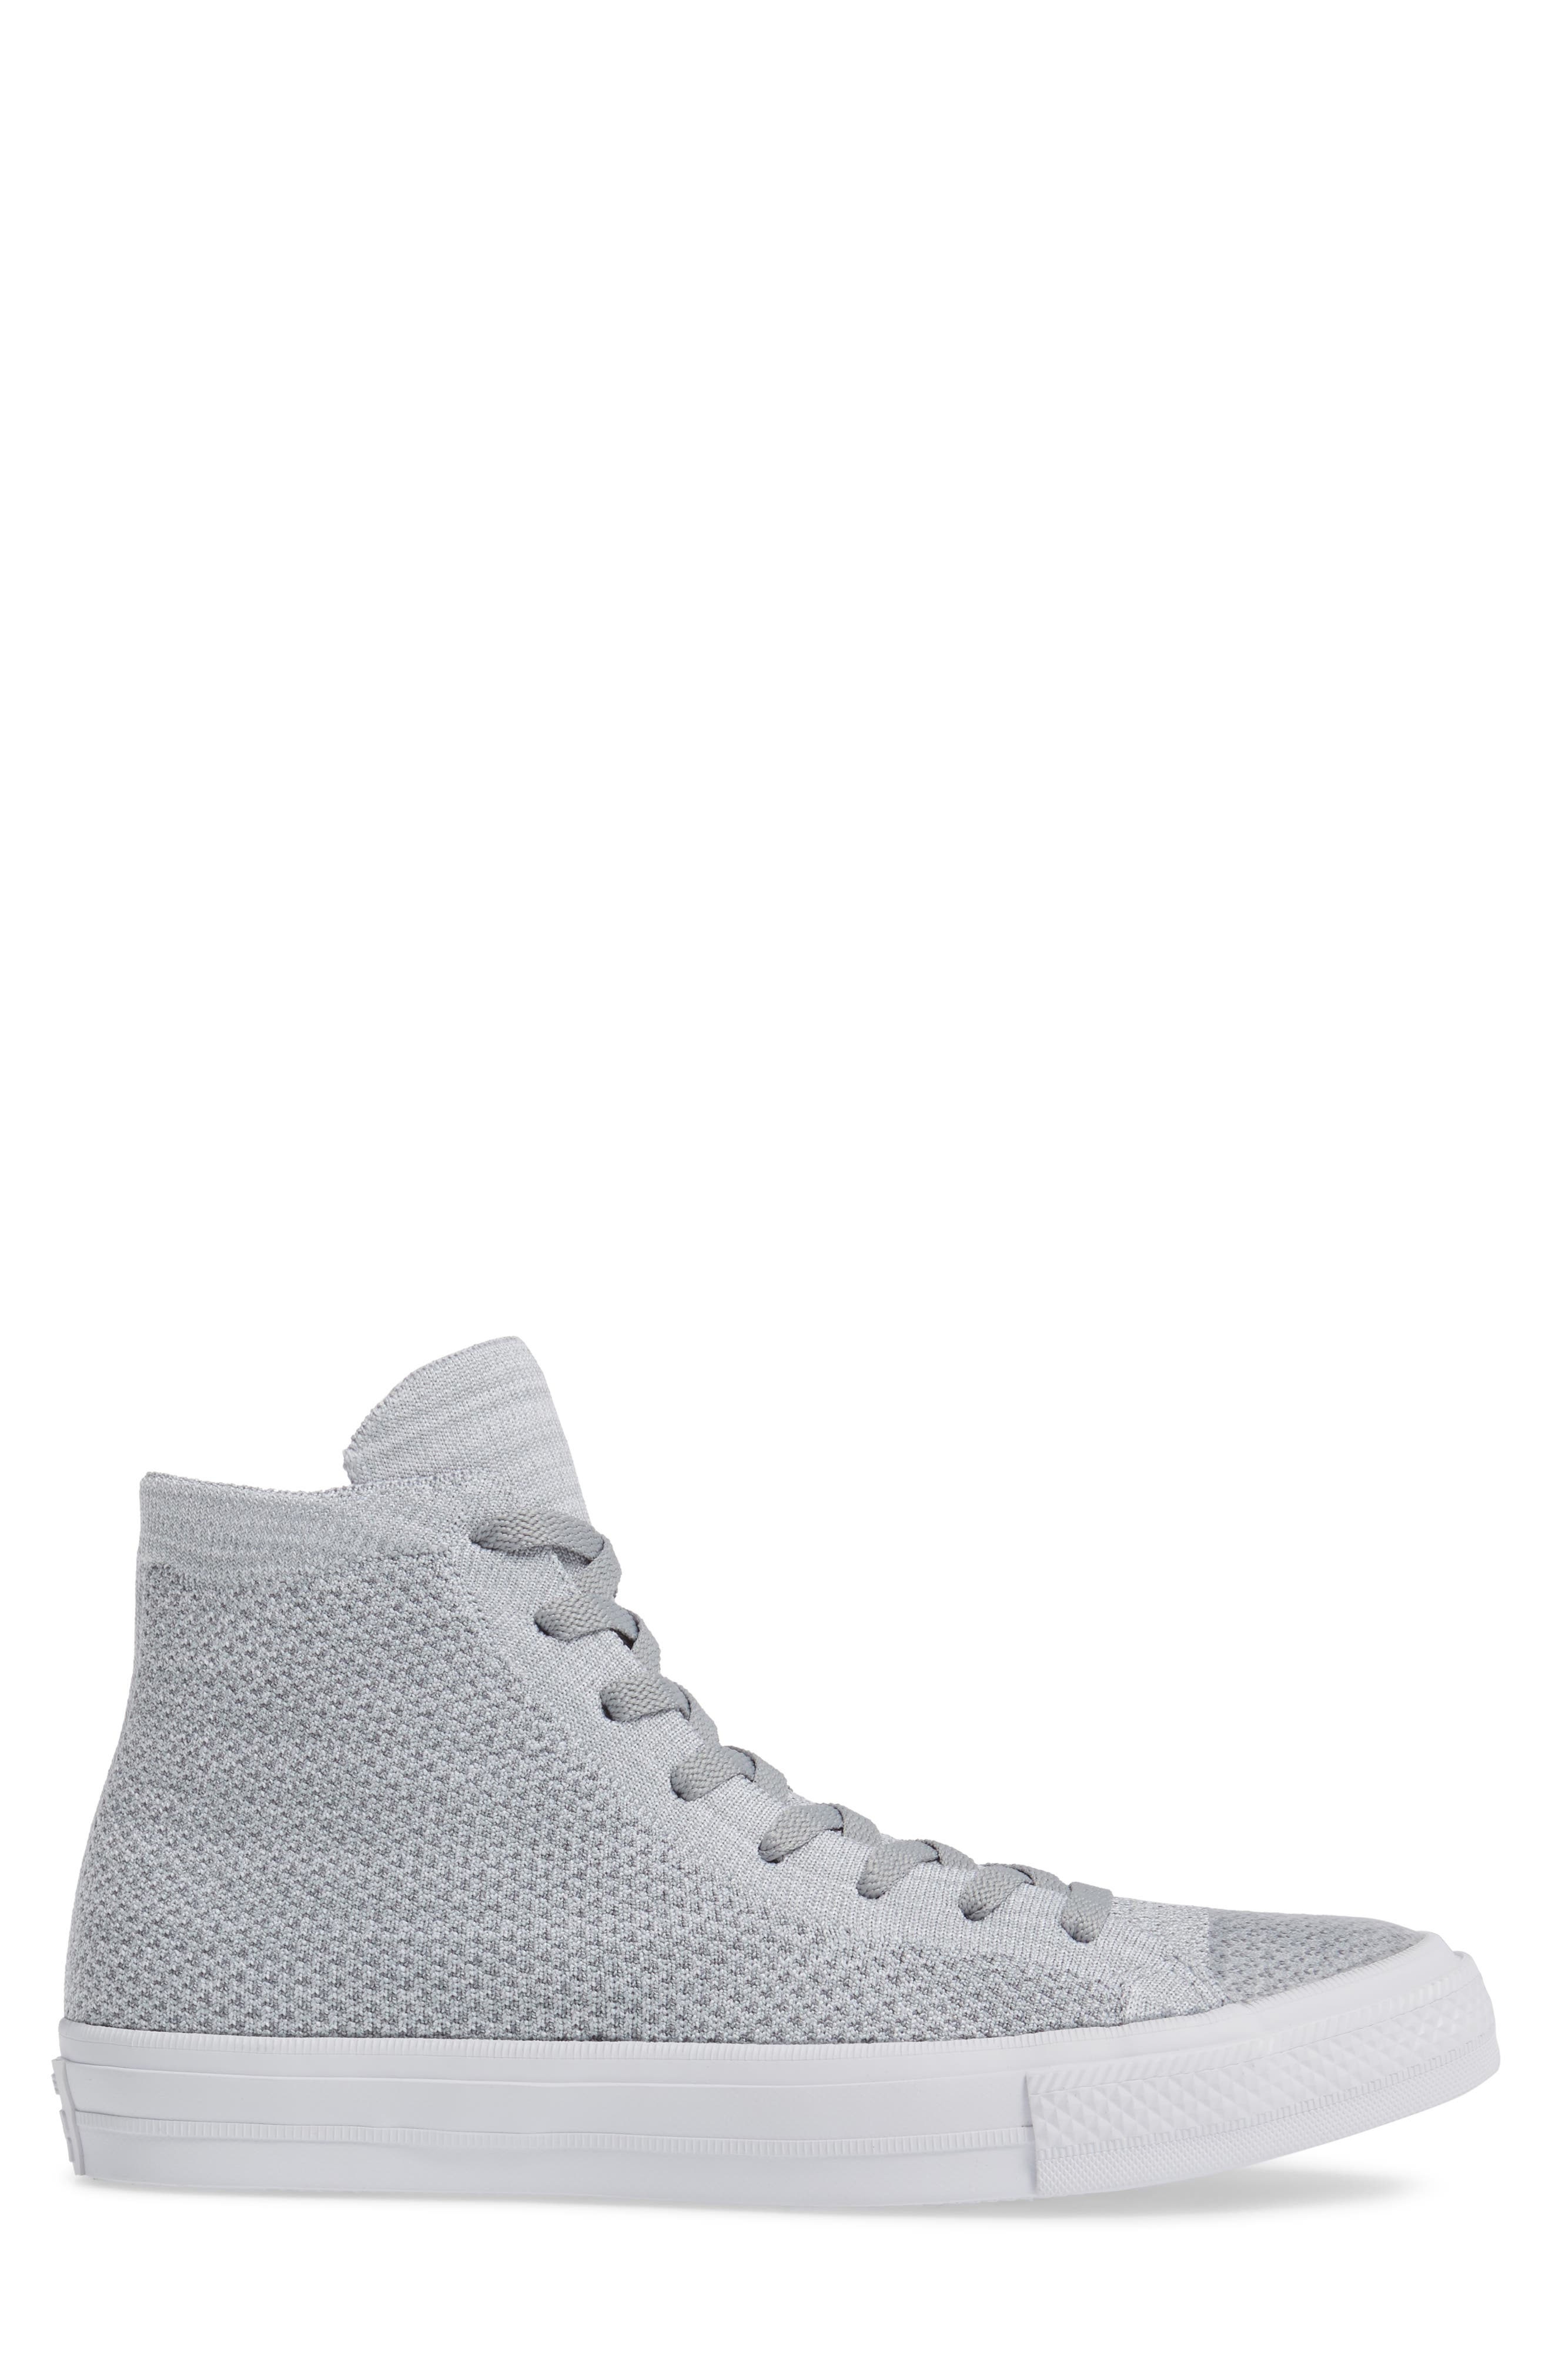 Chuck Taylor<sup>®</sup> All Star<sup>®</sup> Flyknit Hi Sneaker,                             Alternate thumbnail 15, color,